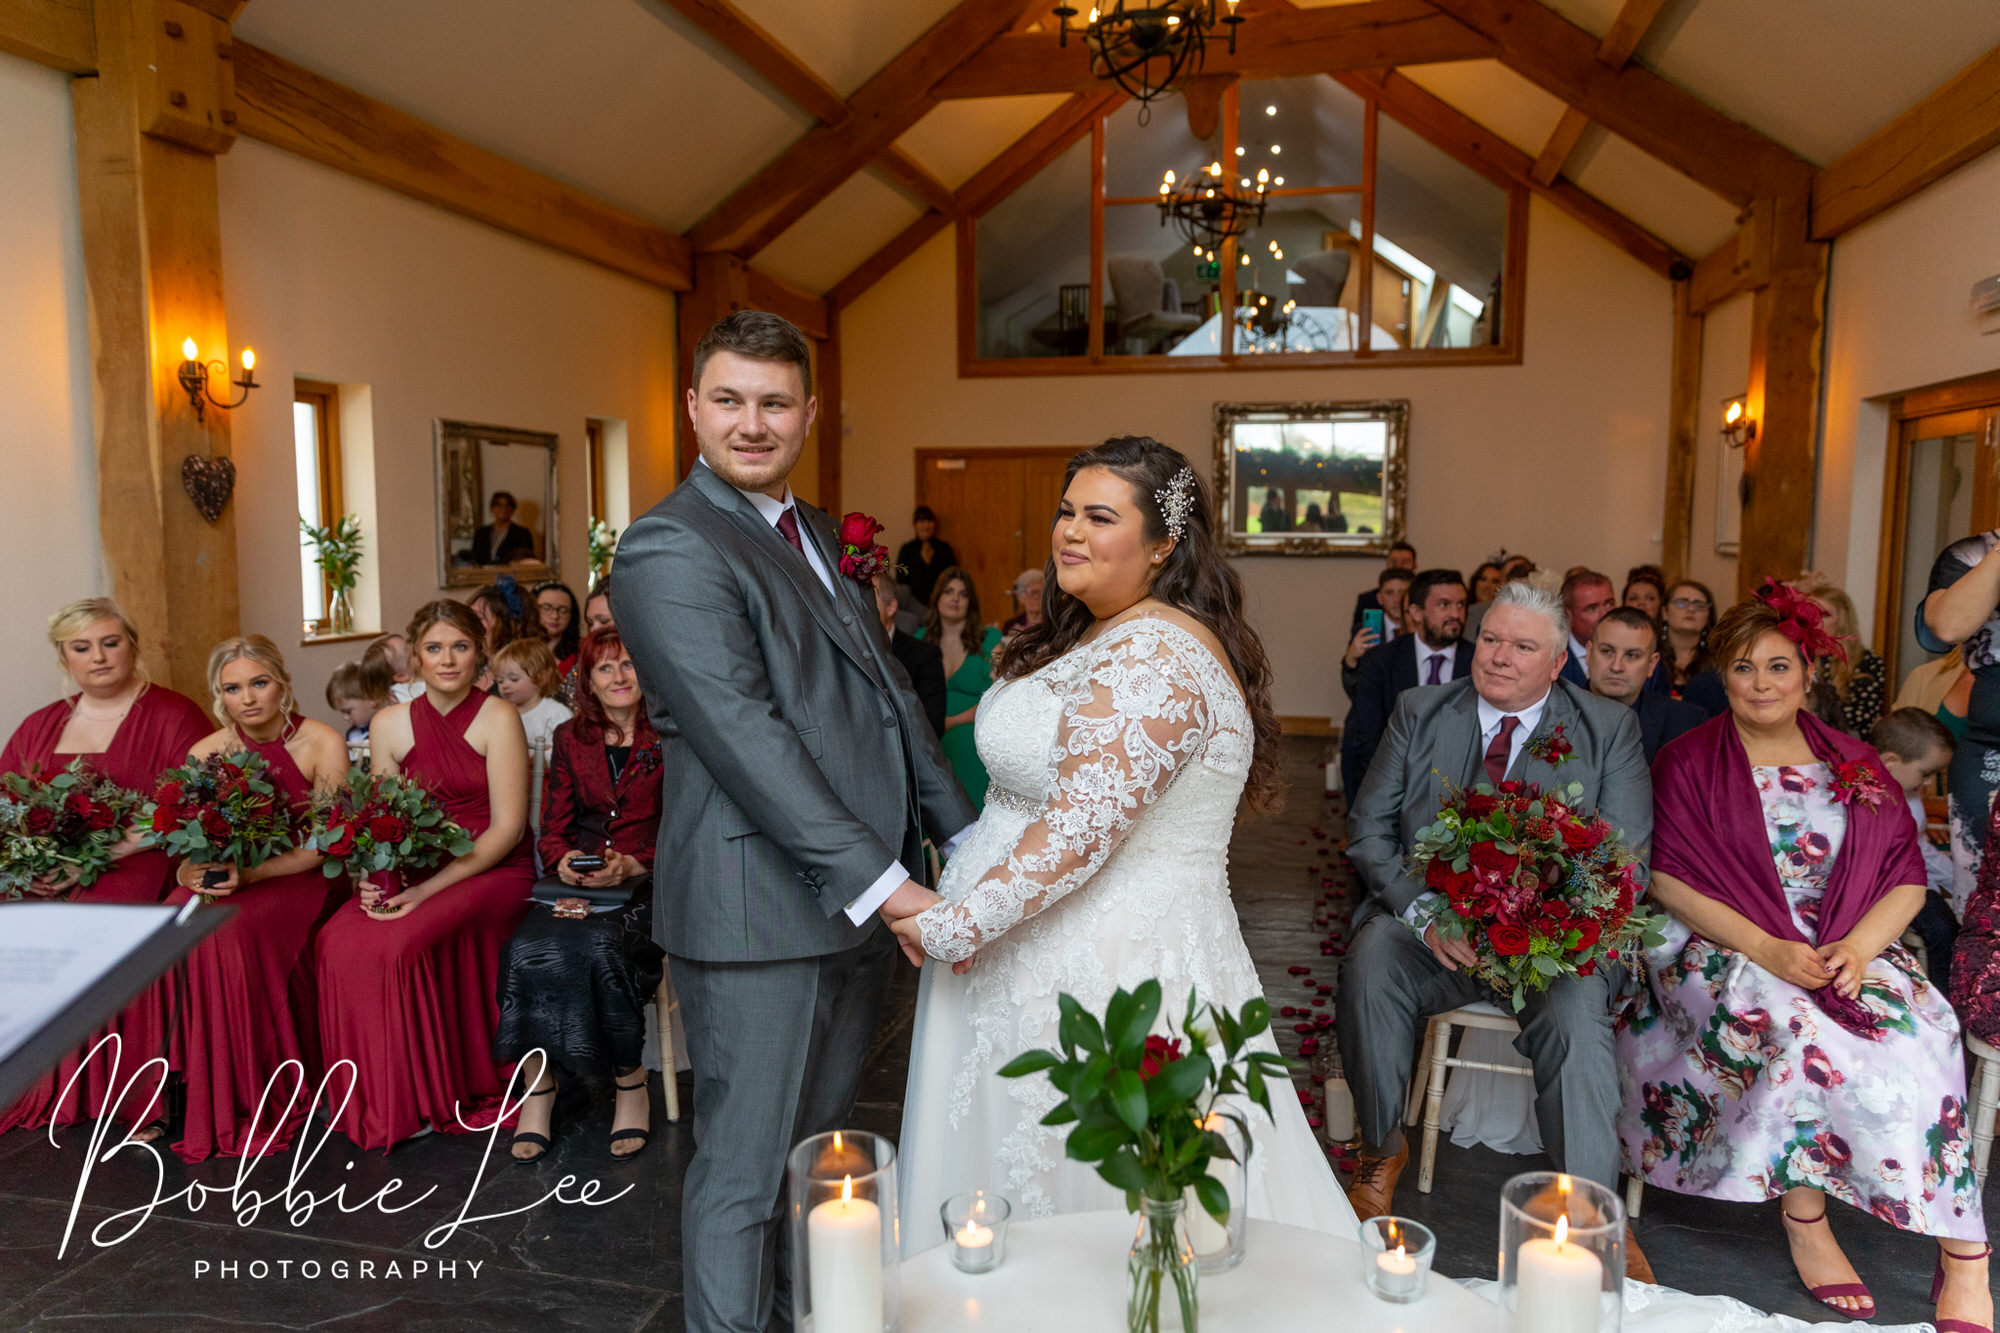 Top tips to save money on your wedding